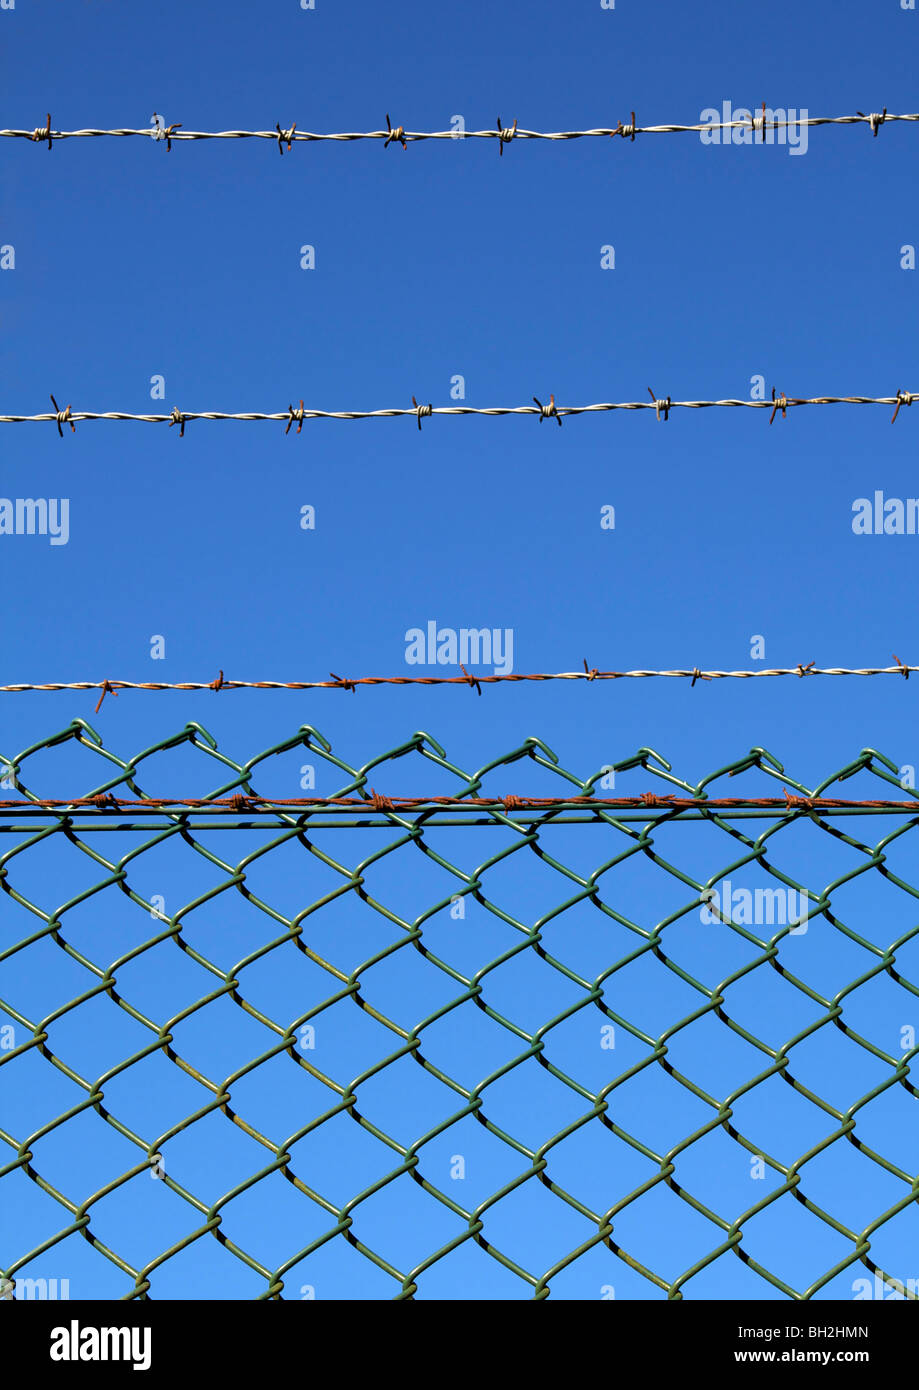 Old barbed wire fence against blue sky - Stock Image